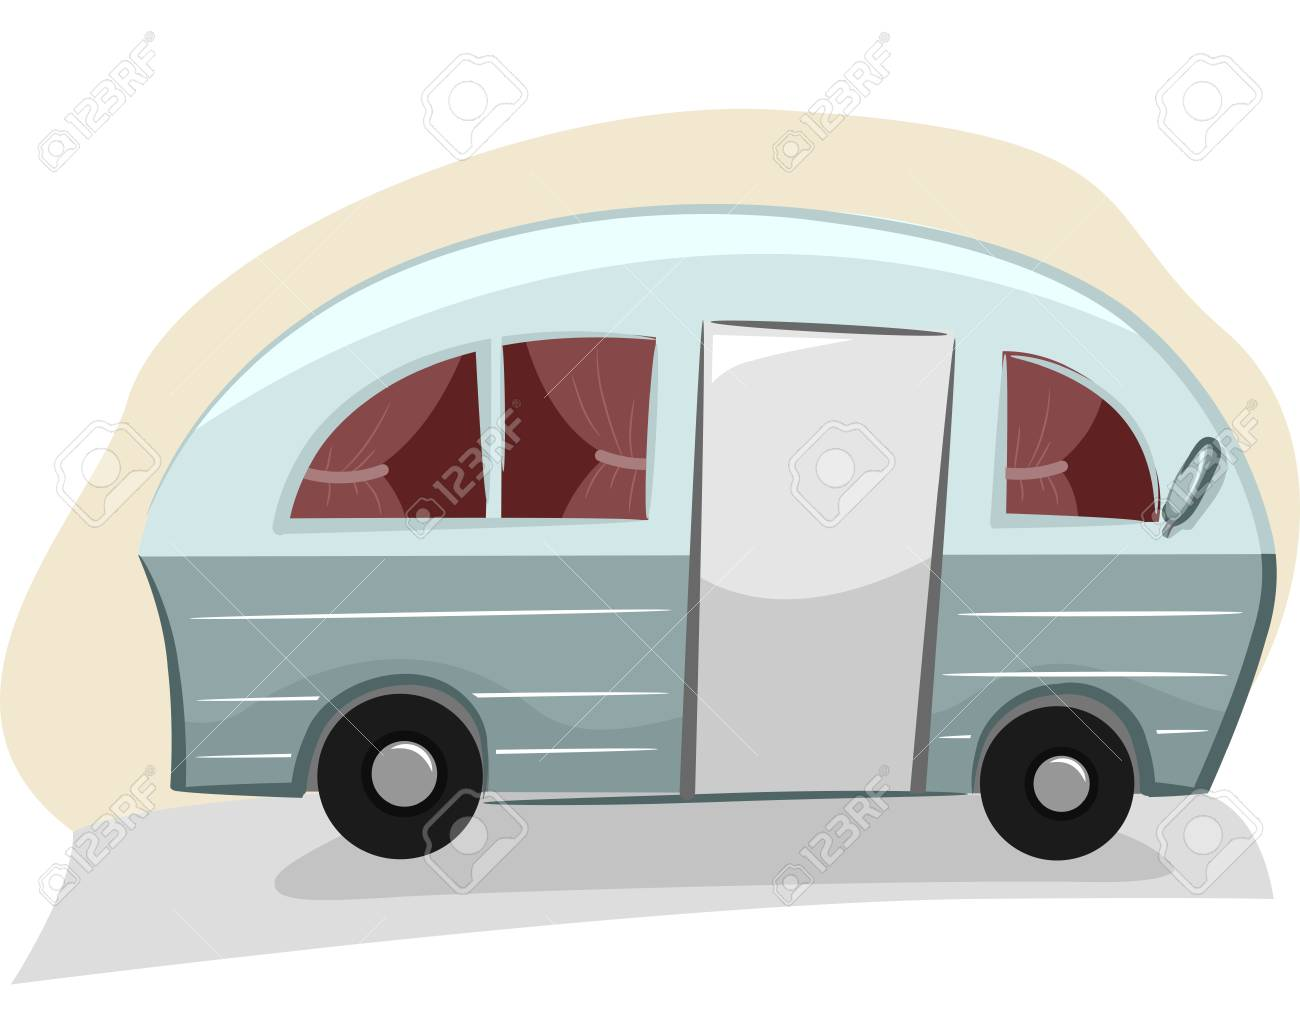 Trailer Curtains Illustration Of A Trailer Van With Visible Curtains Stock Photo